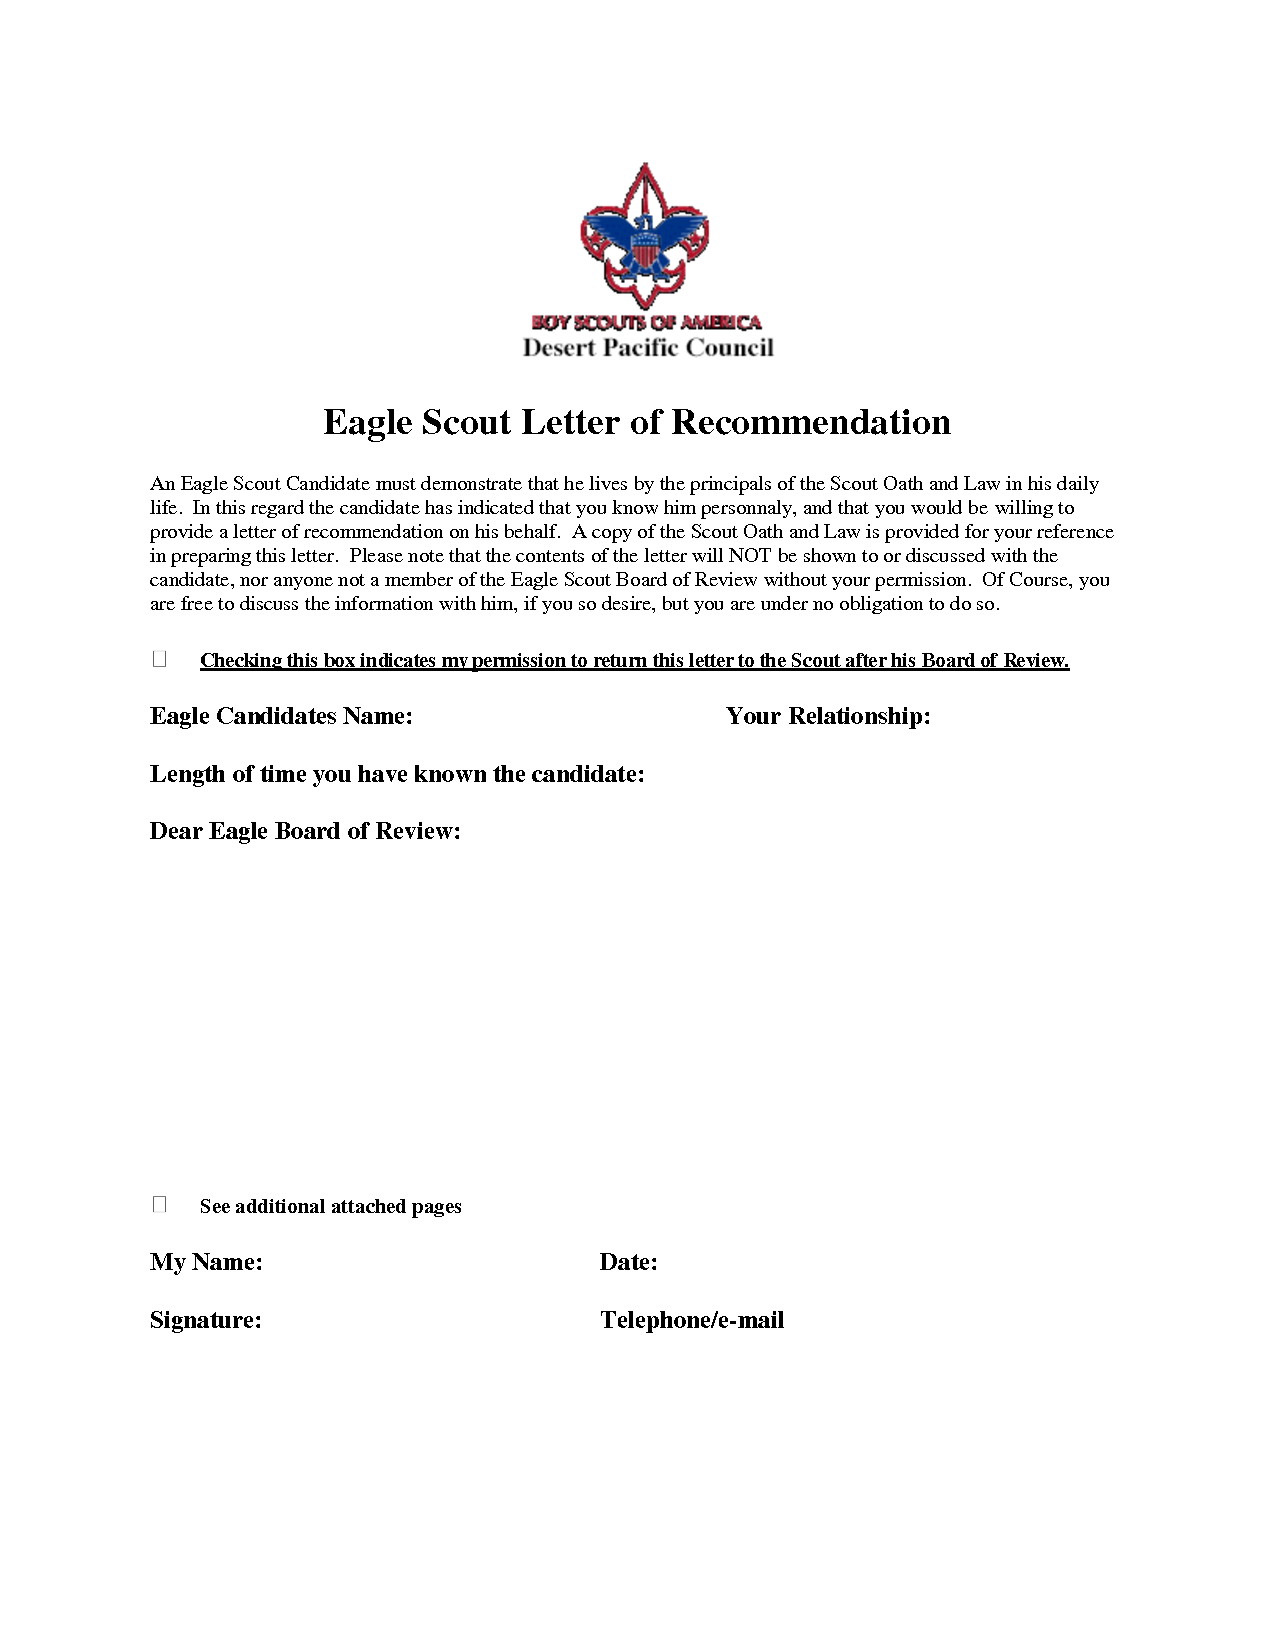 Eagle Scout Recommendation Letter Sample